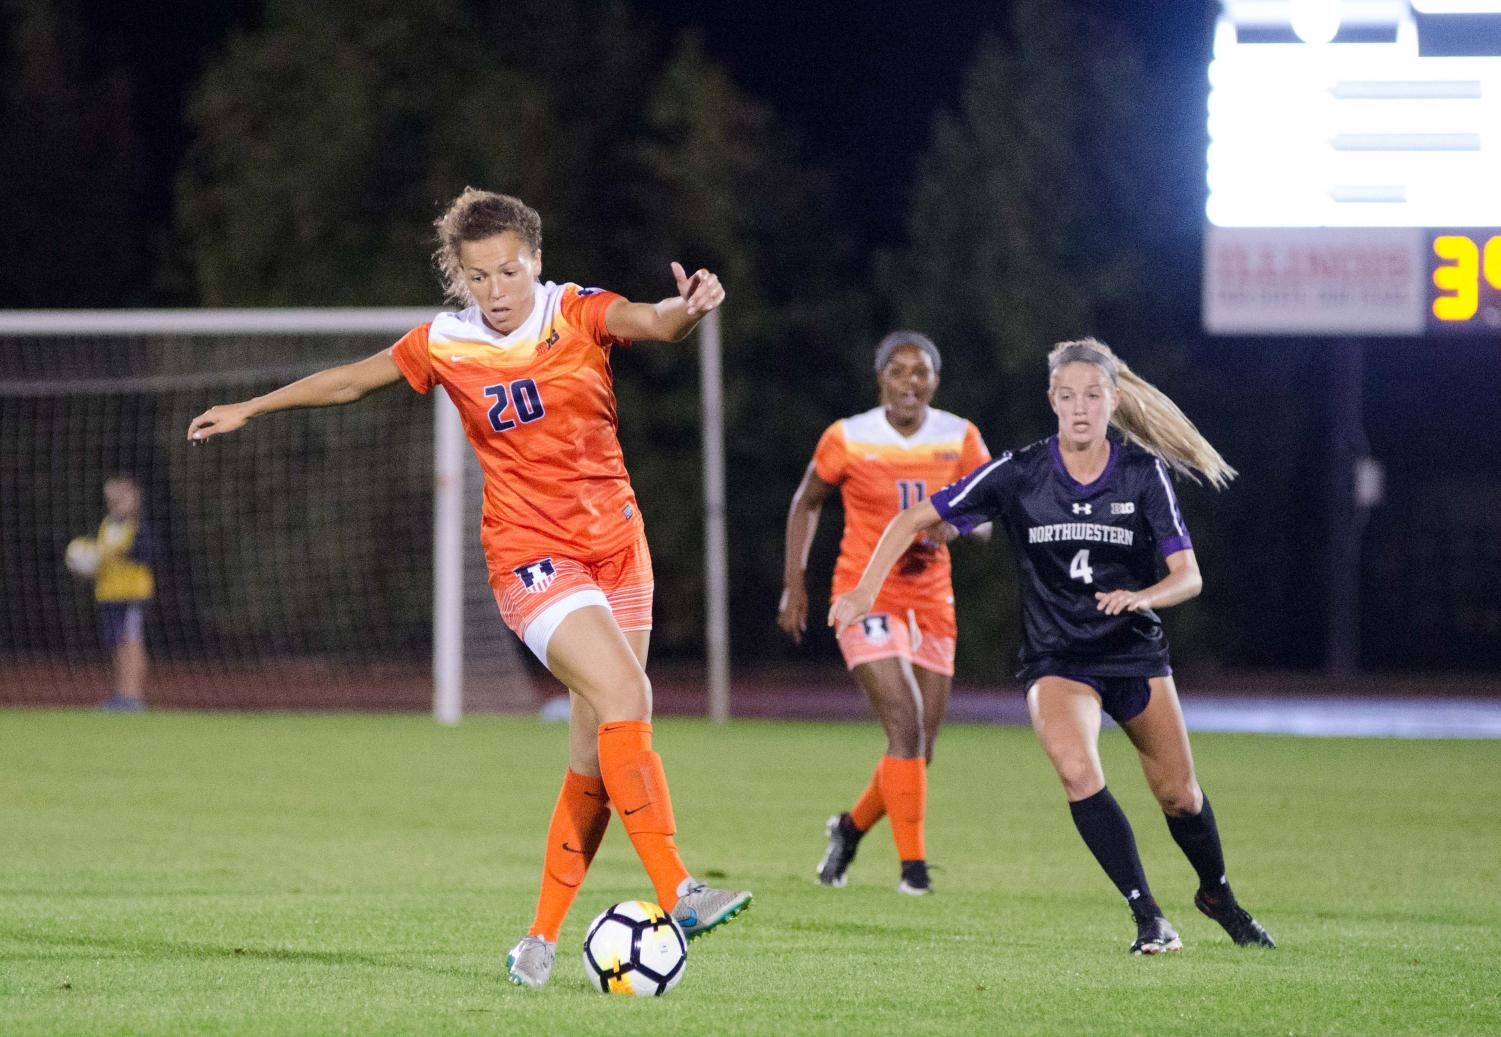 Senior forward Kara Marbury uses her footwork to advance the ball into Northwestern territory. The Illini won the matchup against the Wildcats 1-0, but that would be the Illini's last win of the season, ending it with a four-game losing streak.